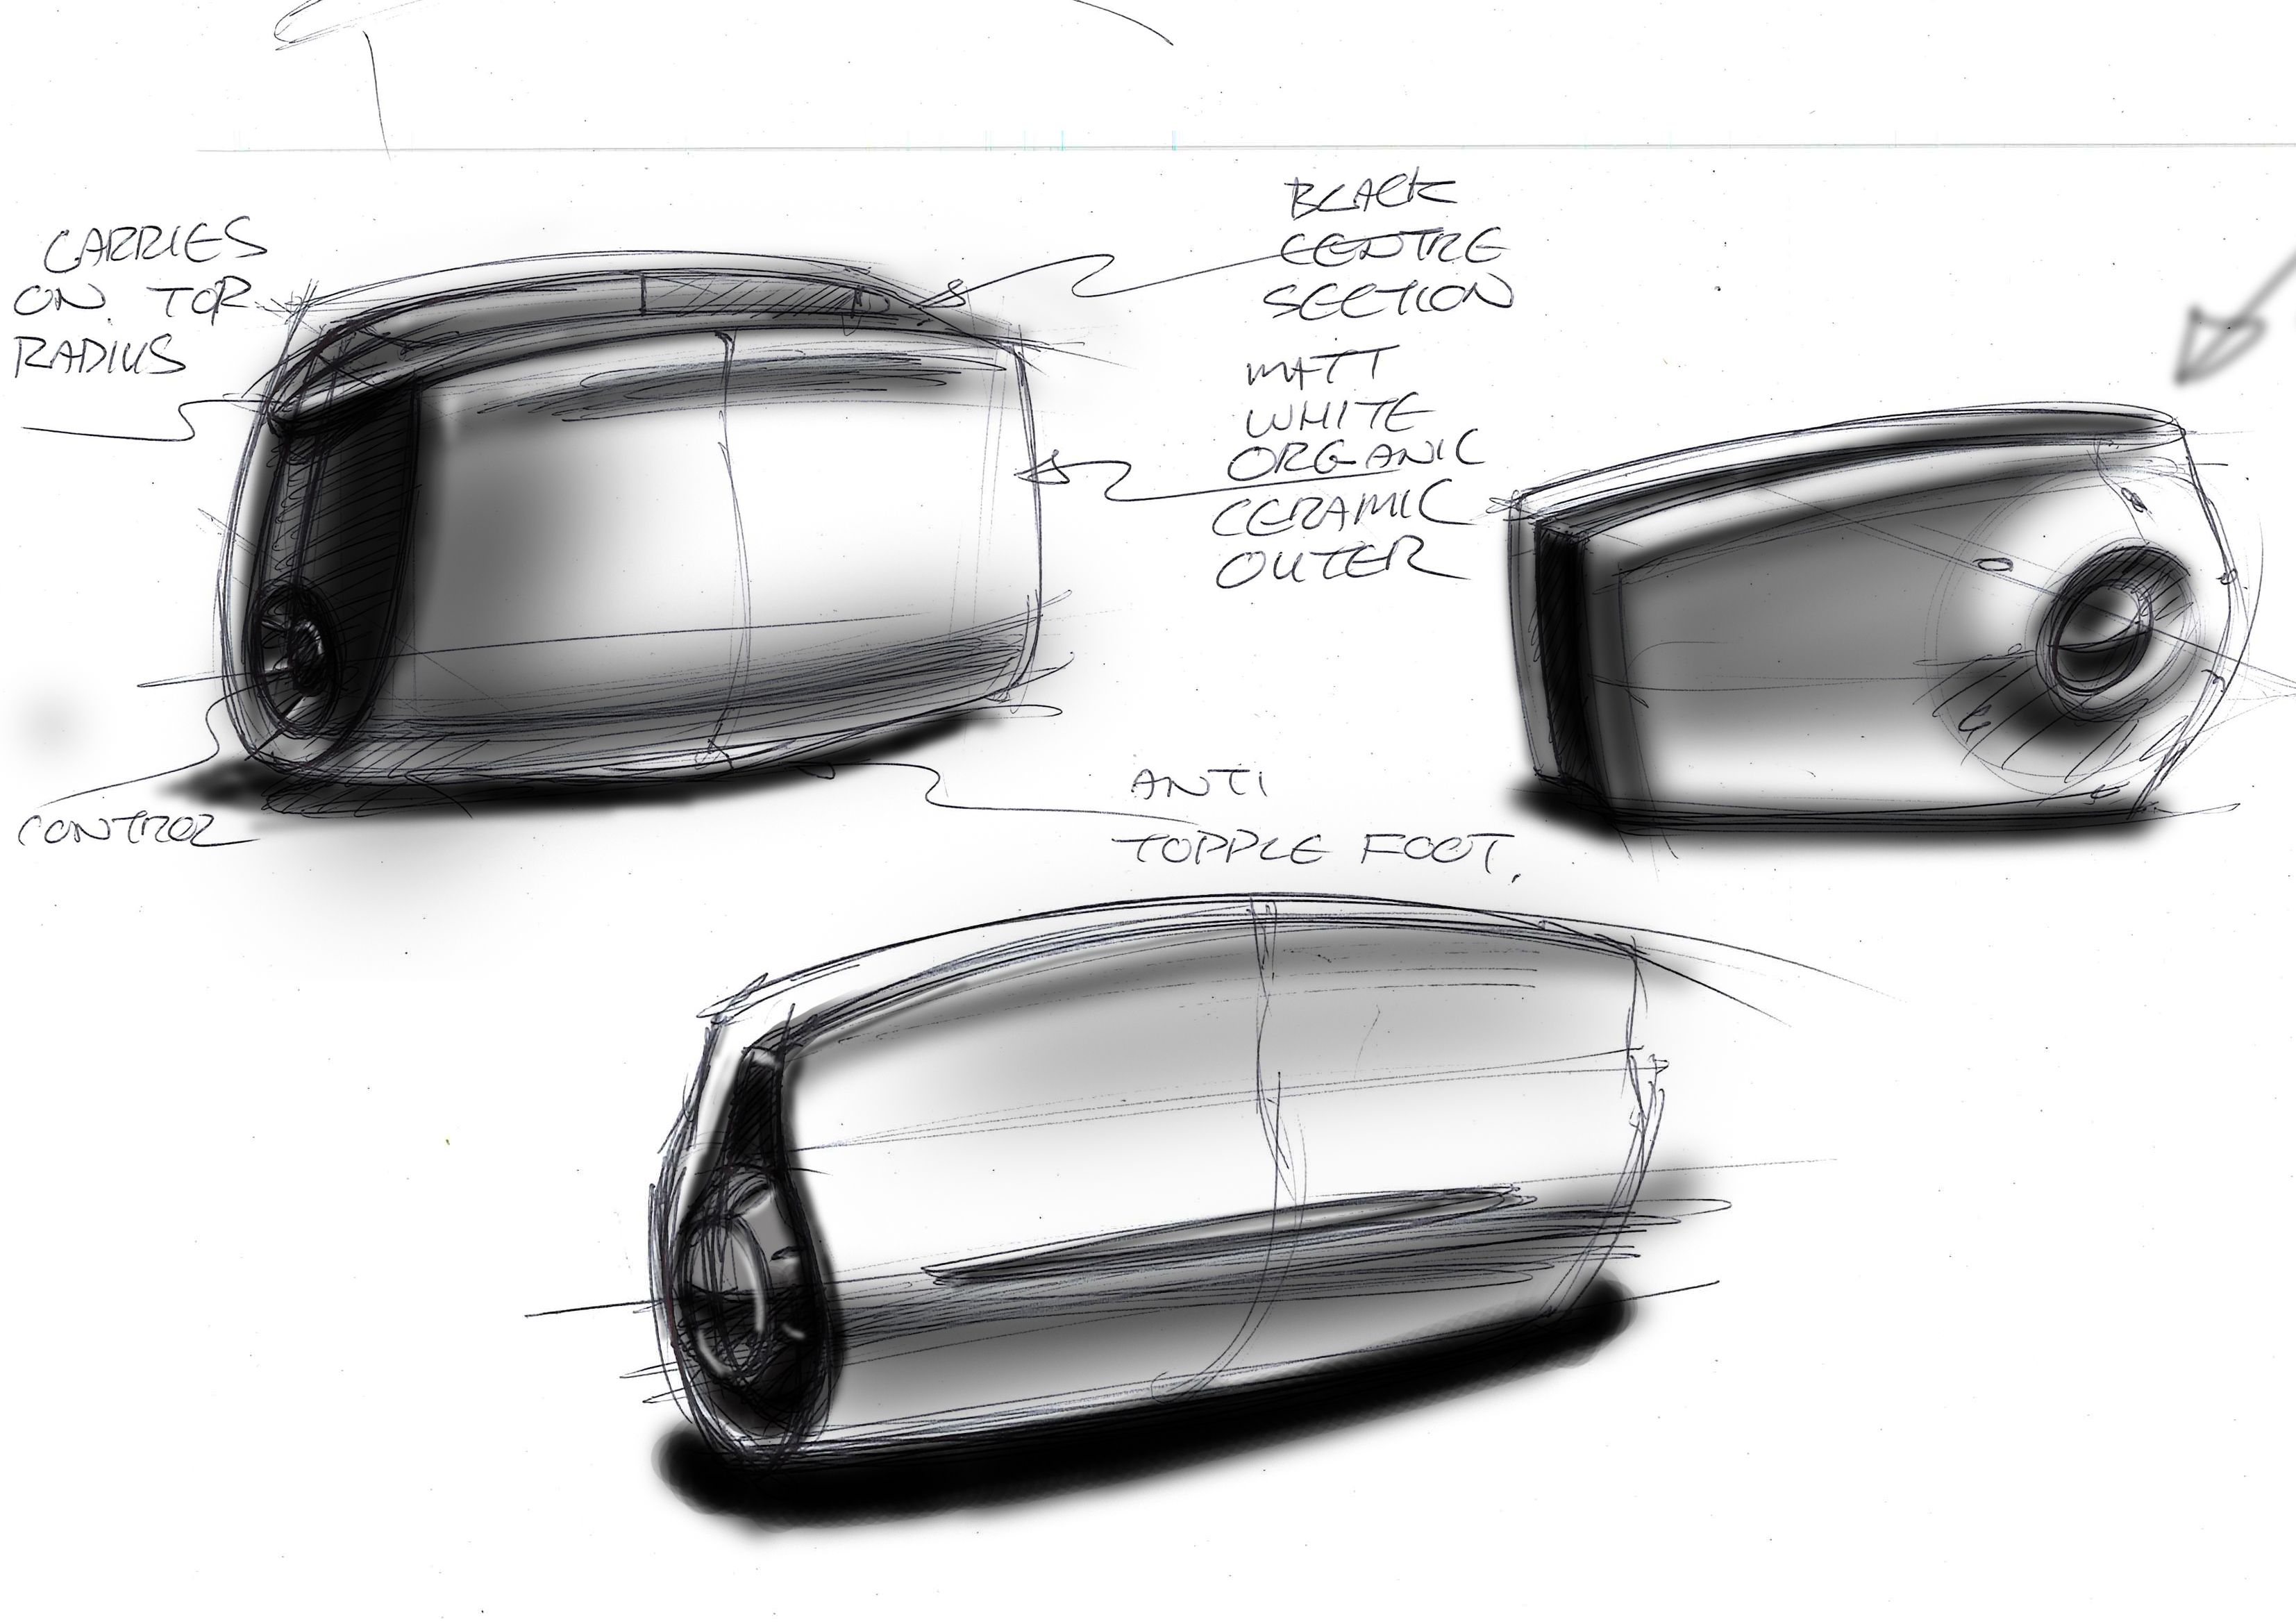 Grille Pain Design Quick Toaster Sketches By Ian Storer Concept Art Sketching